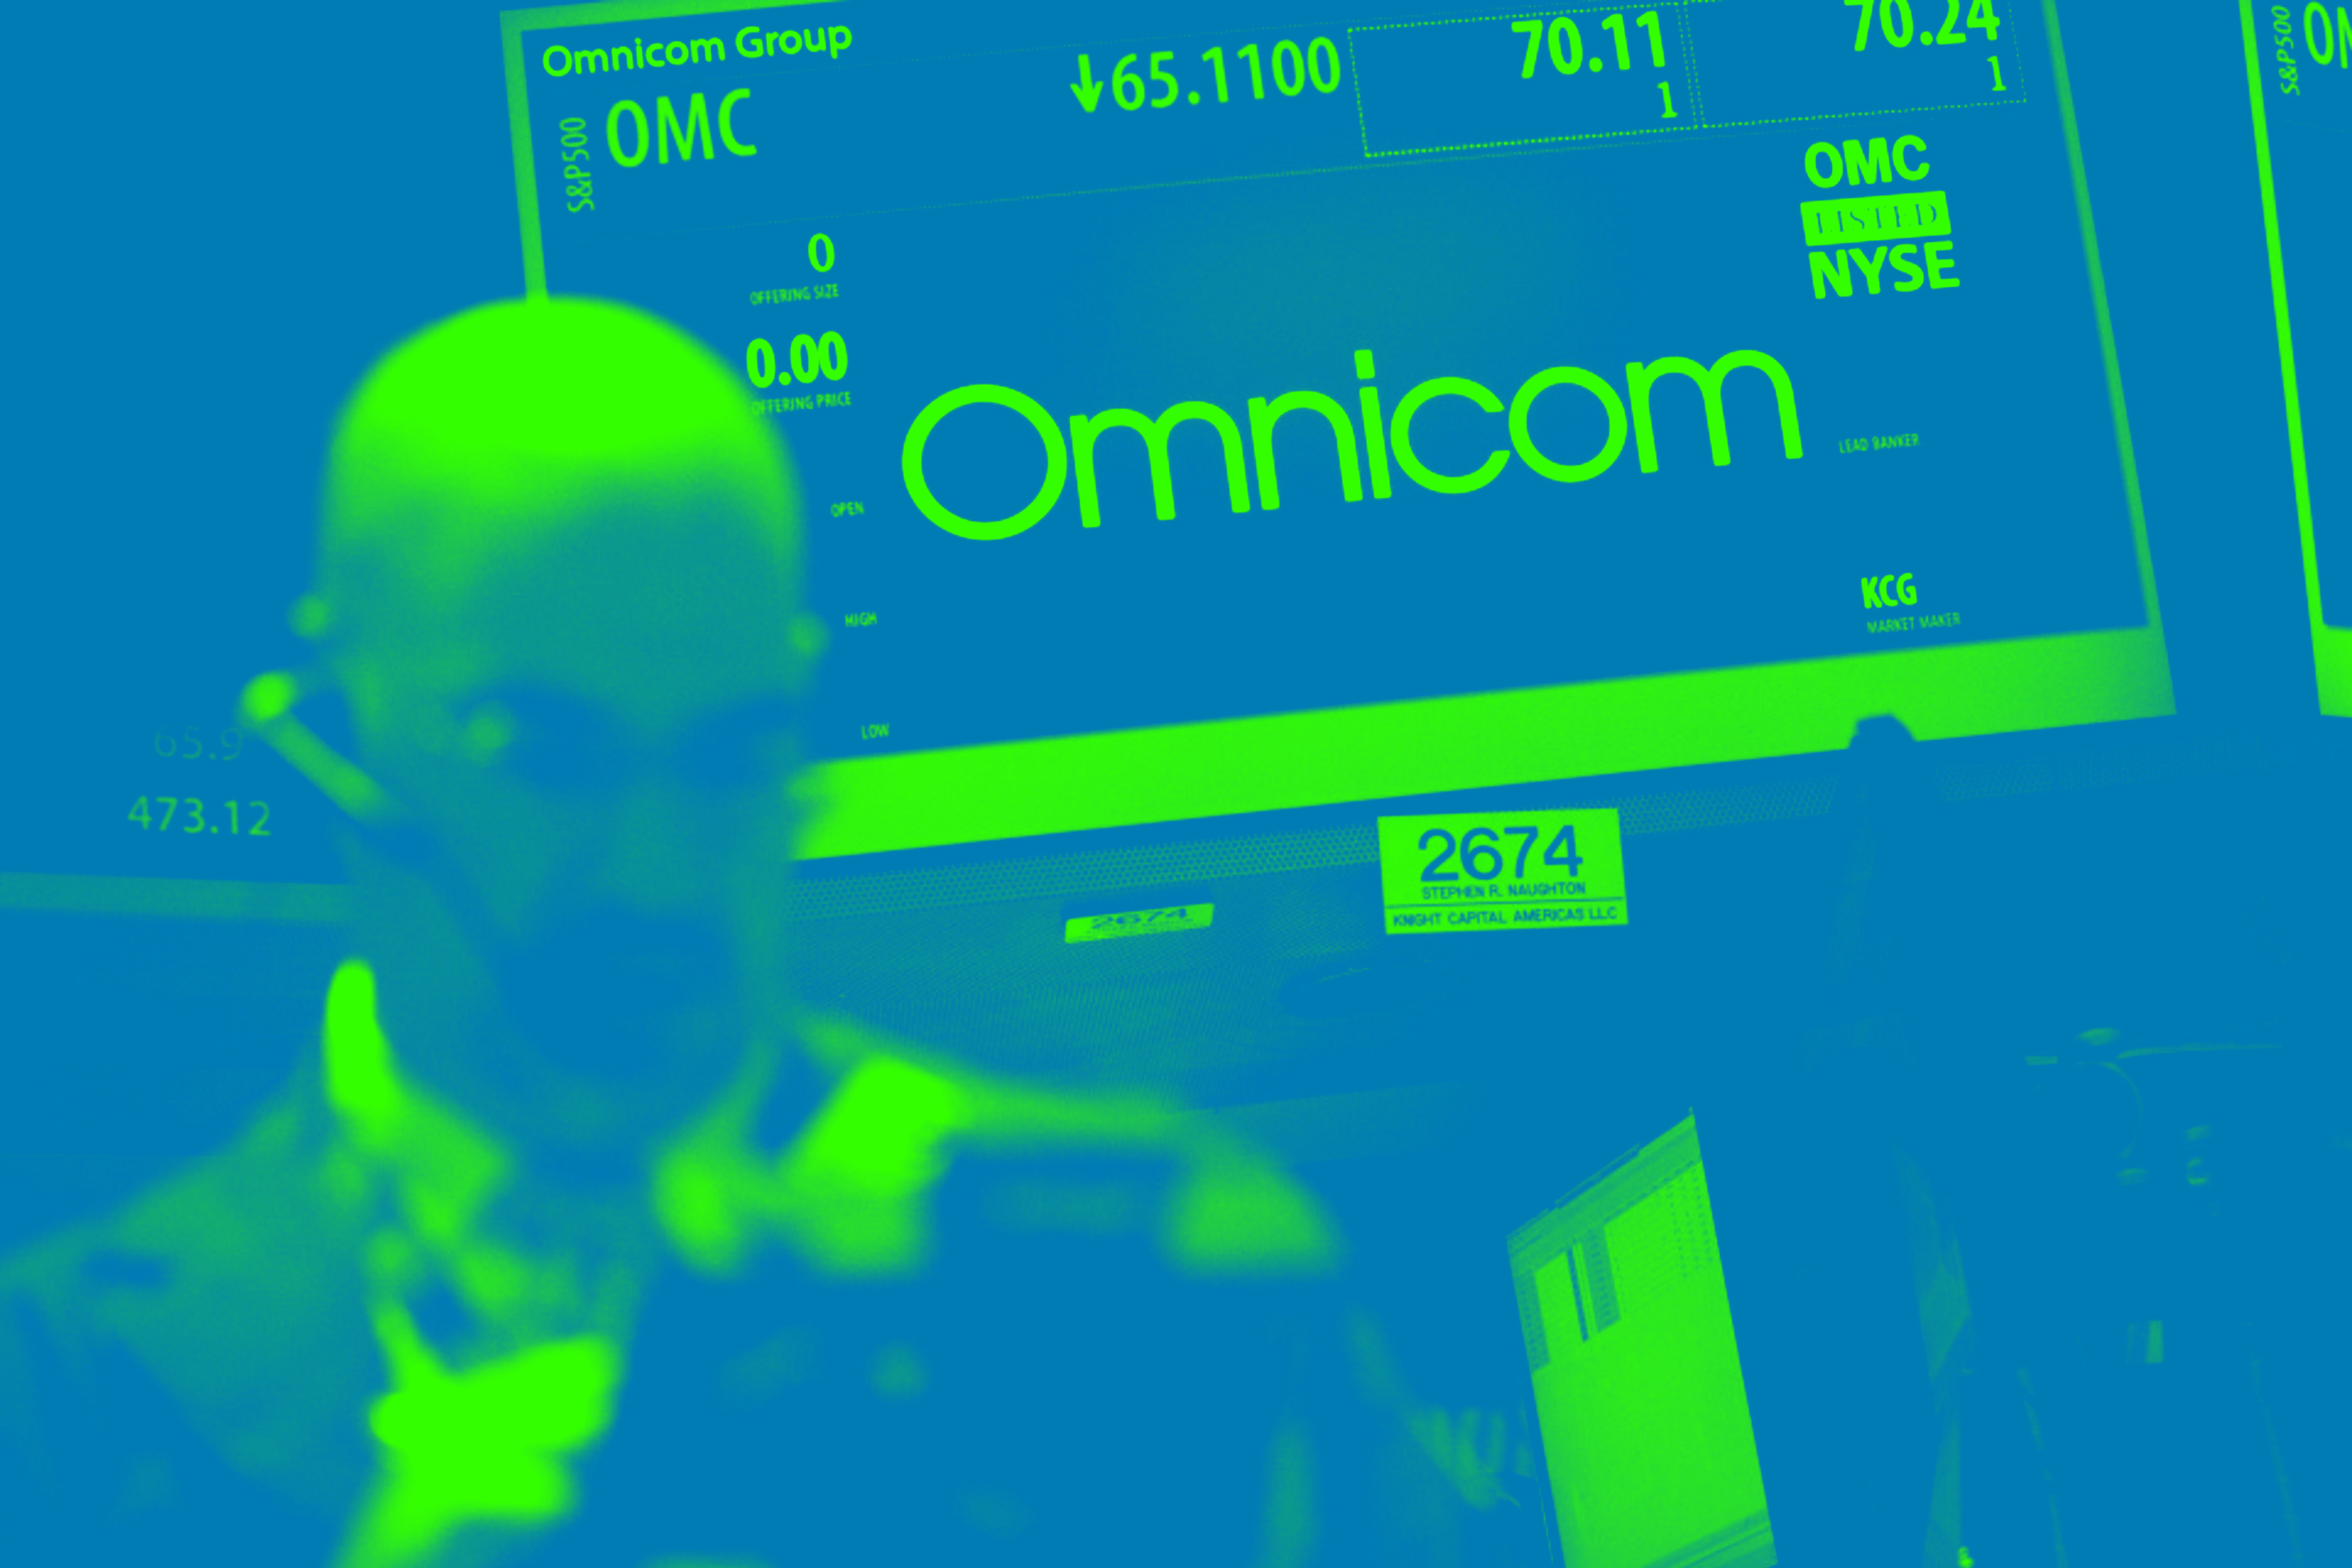 Omnicom shares rise on strong fourth quarter, full-year growth